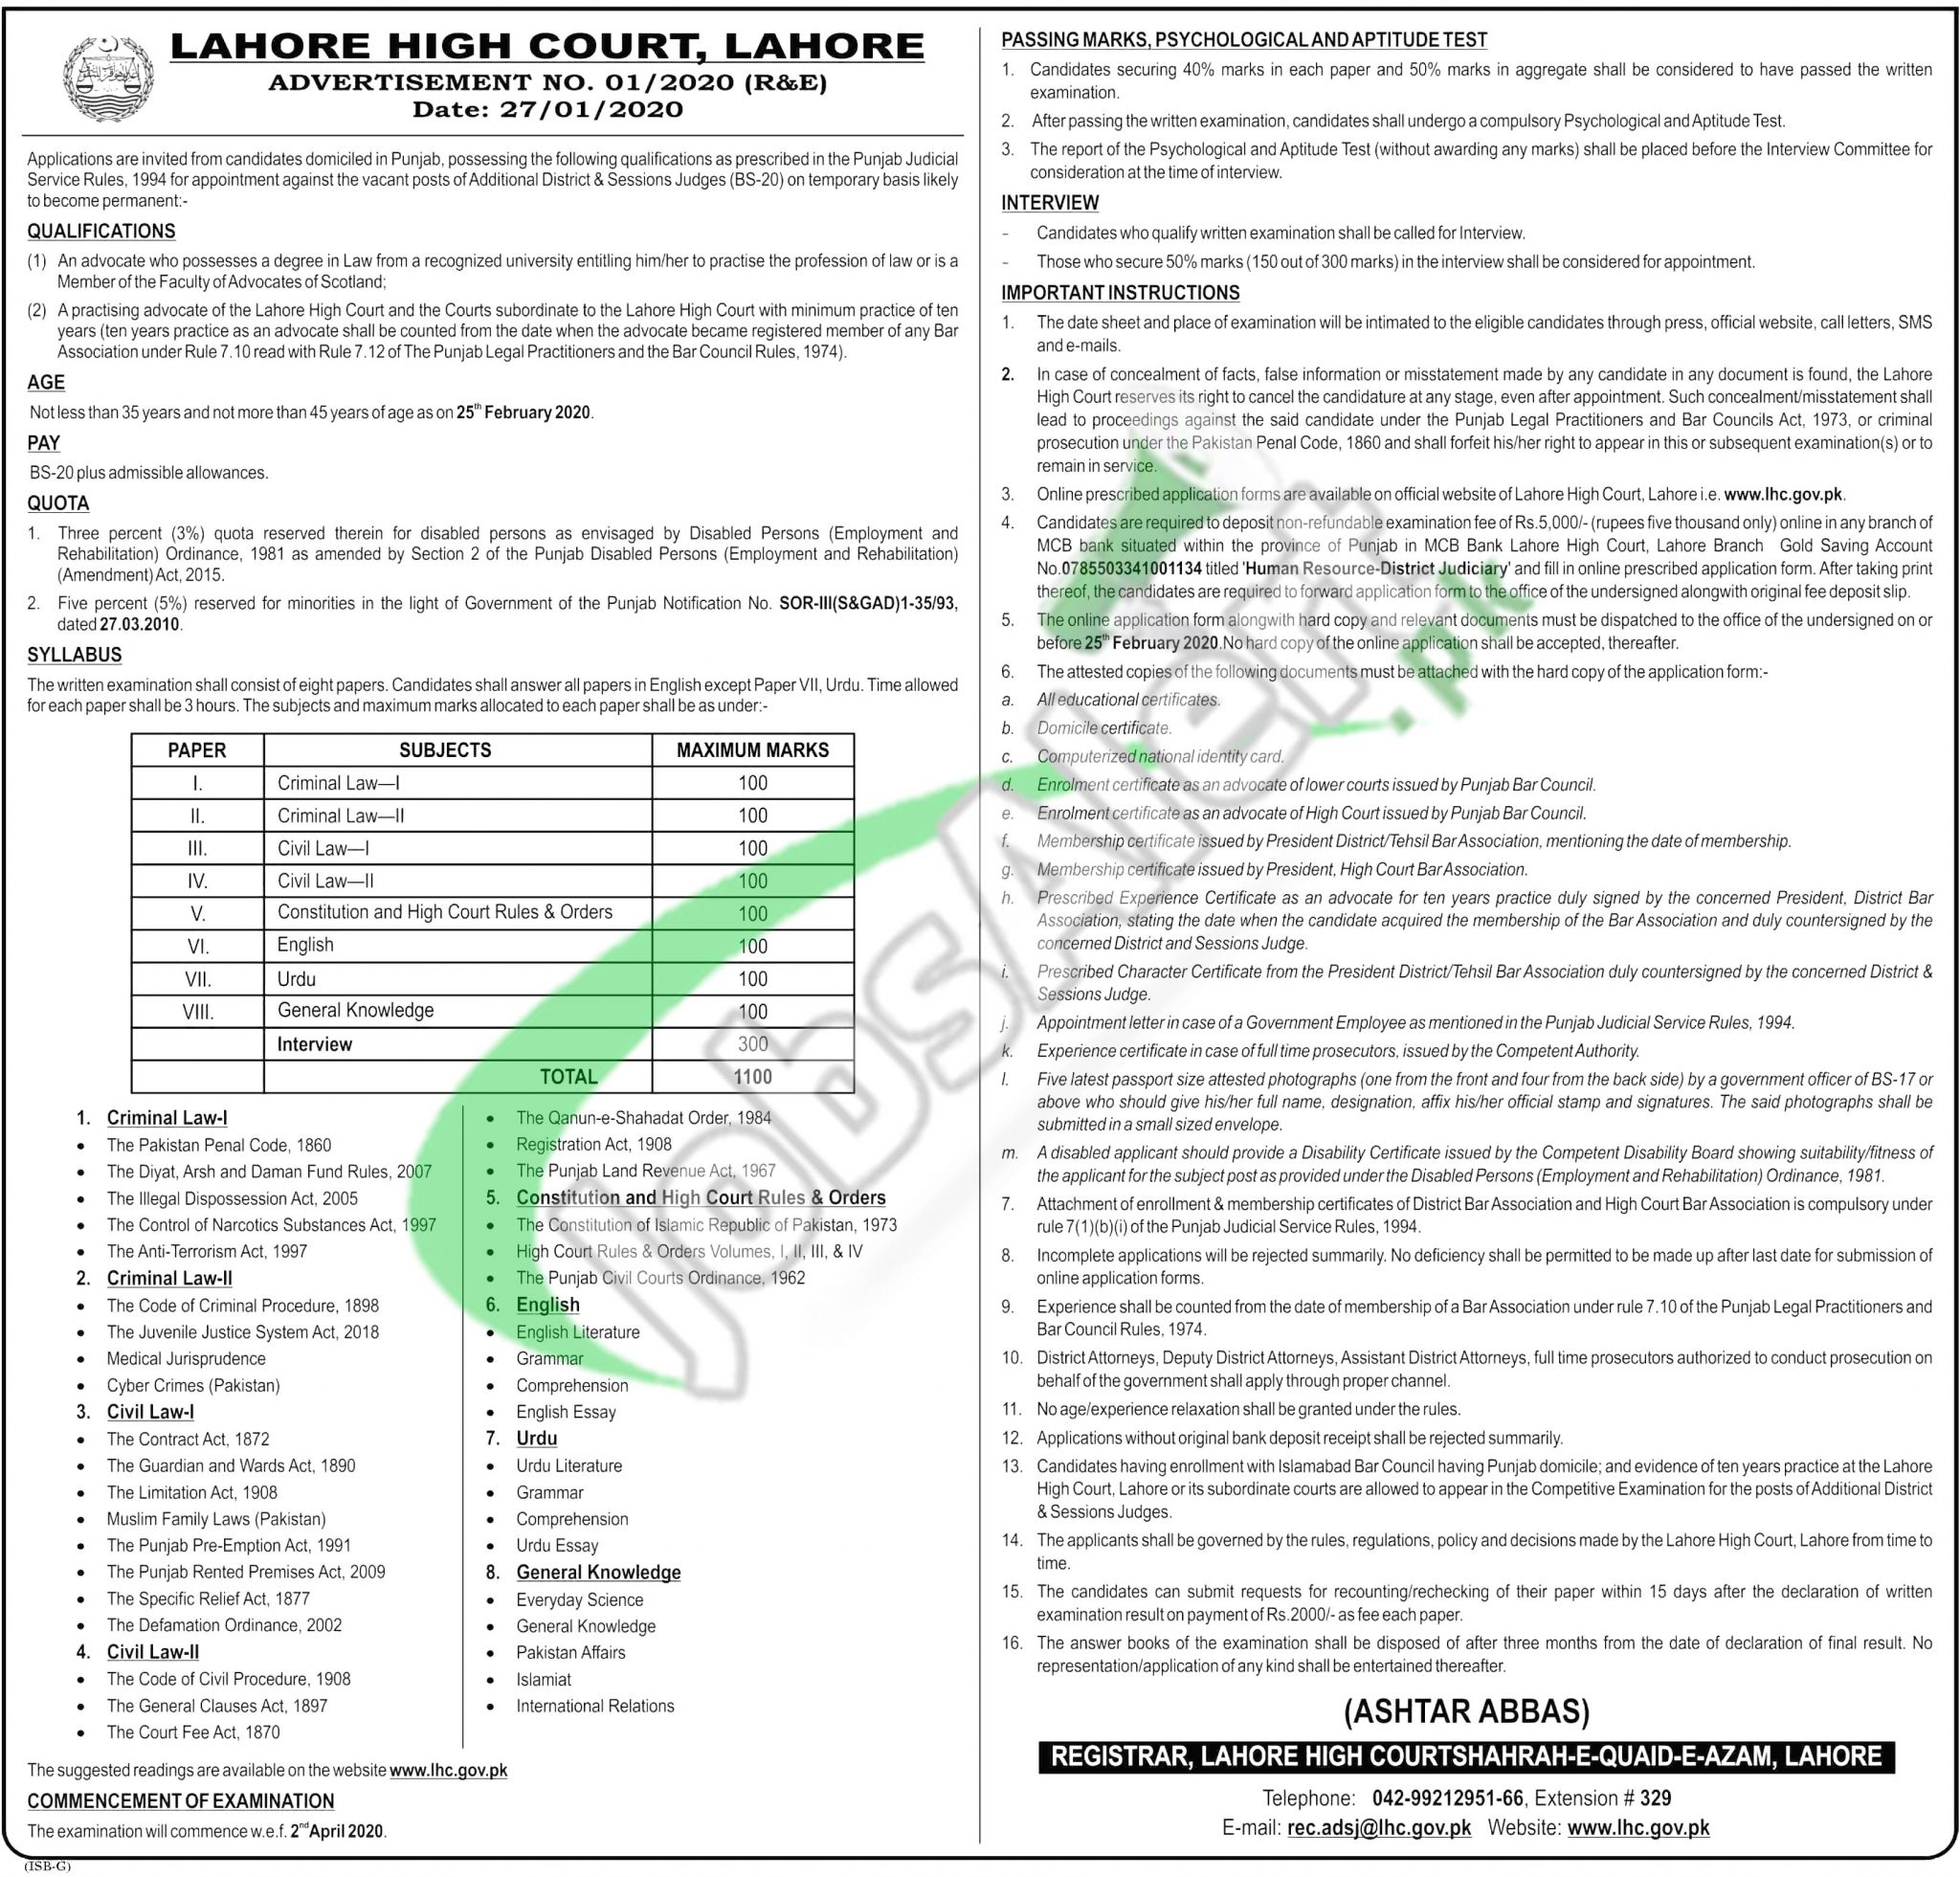 Lahore High Court Job Opportunities